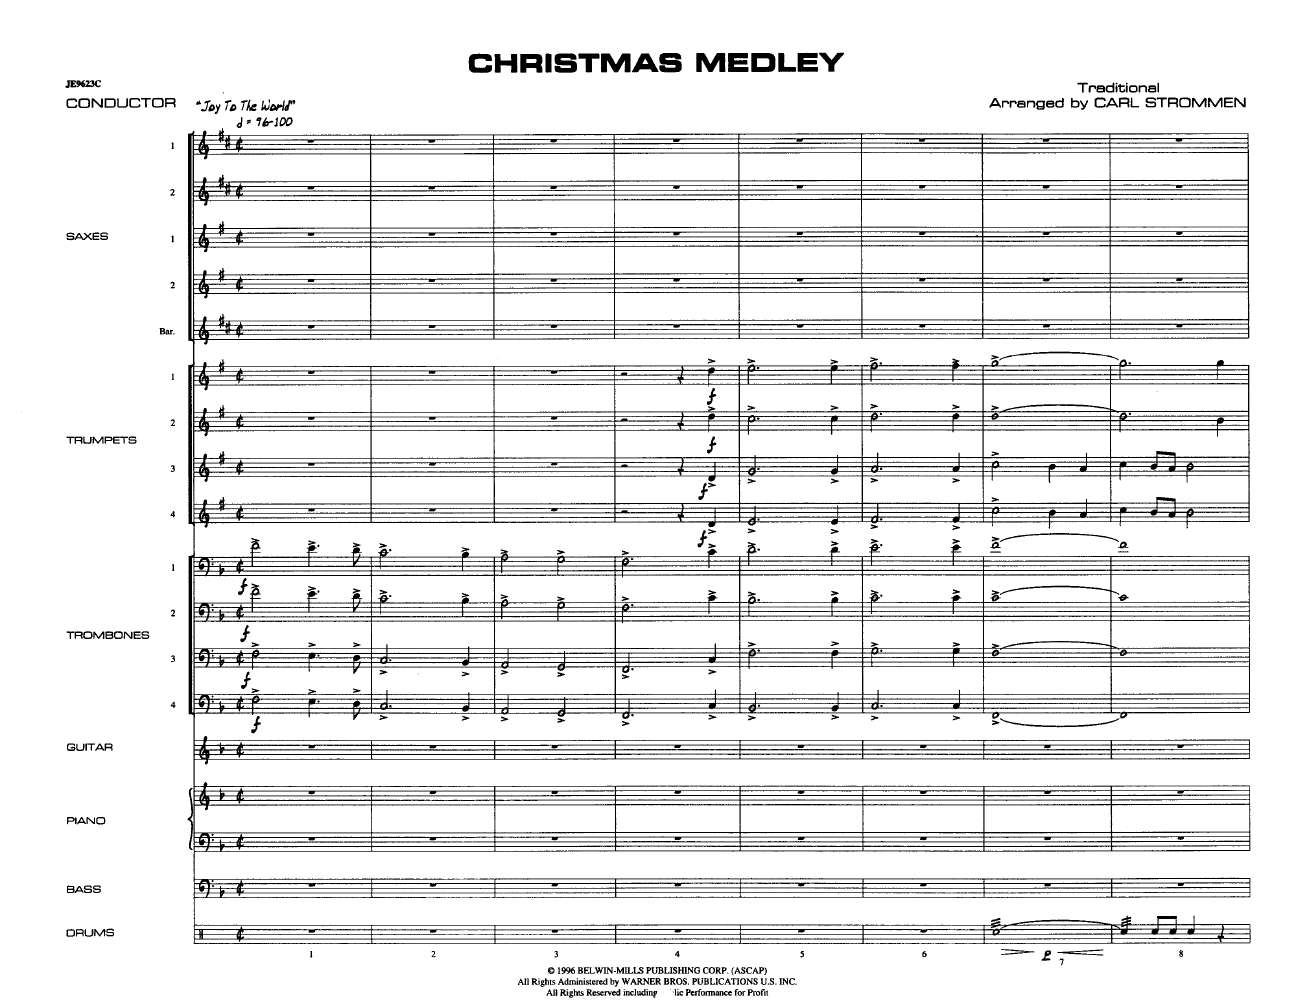 christmas medley thumbnail - Christmas Medley Lyrics